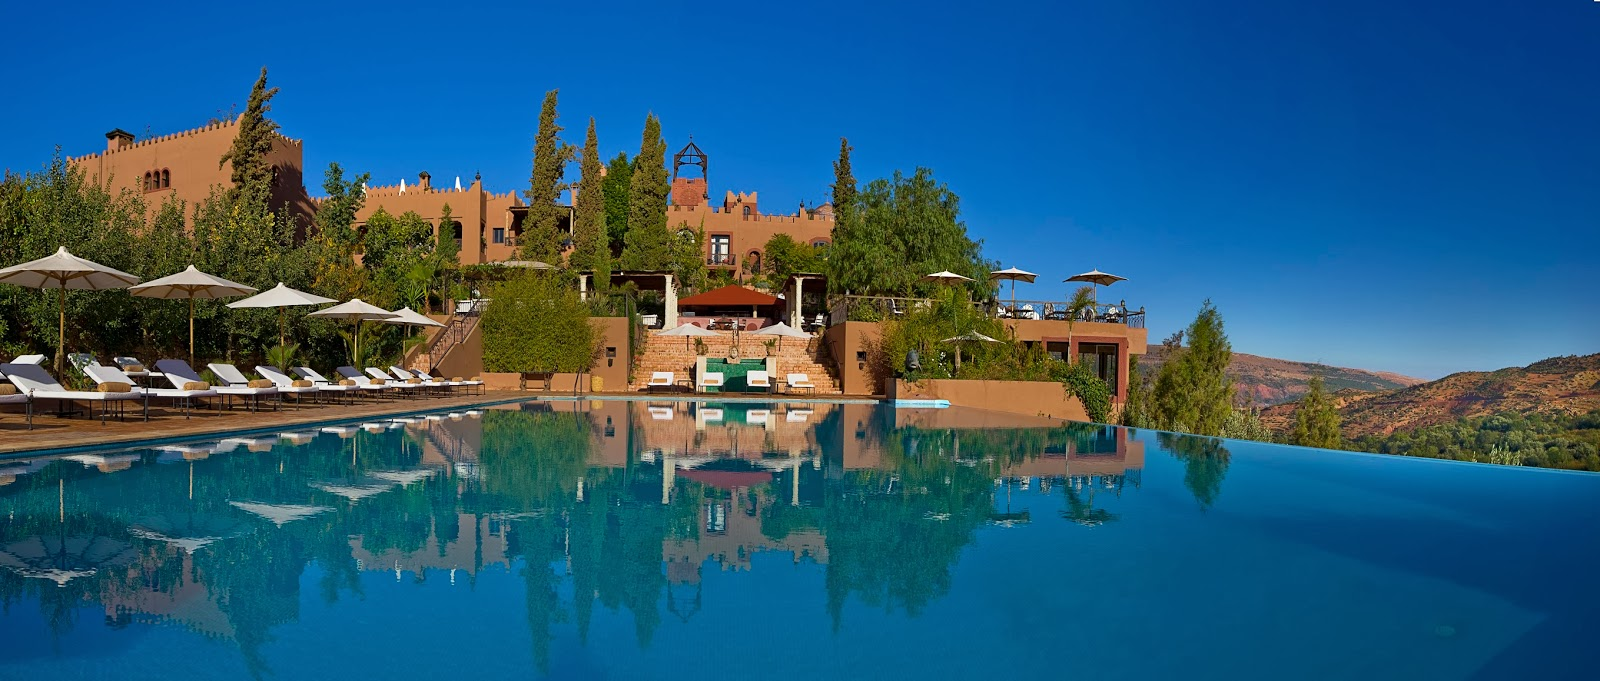 Hotel in Marrakesch - Ritz Reisen